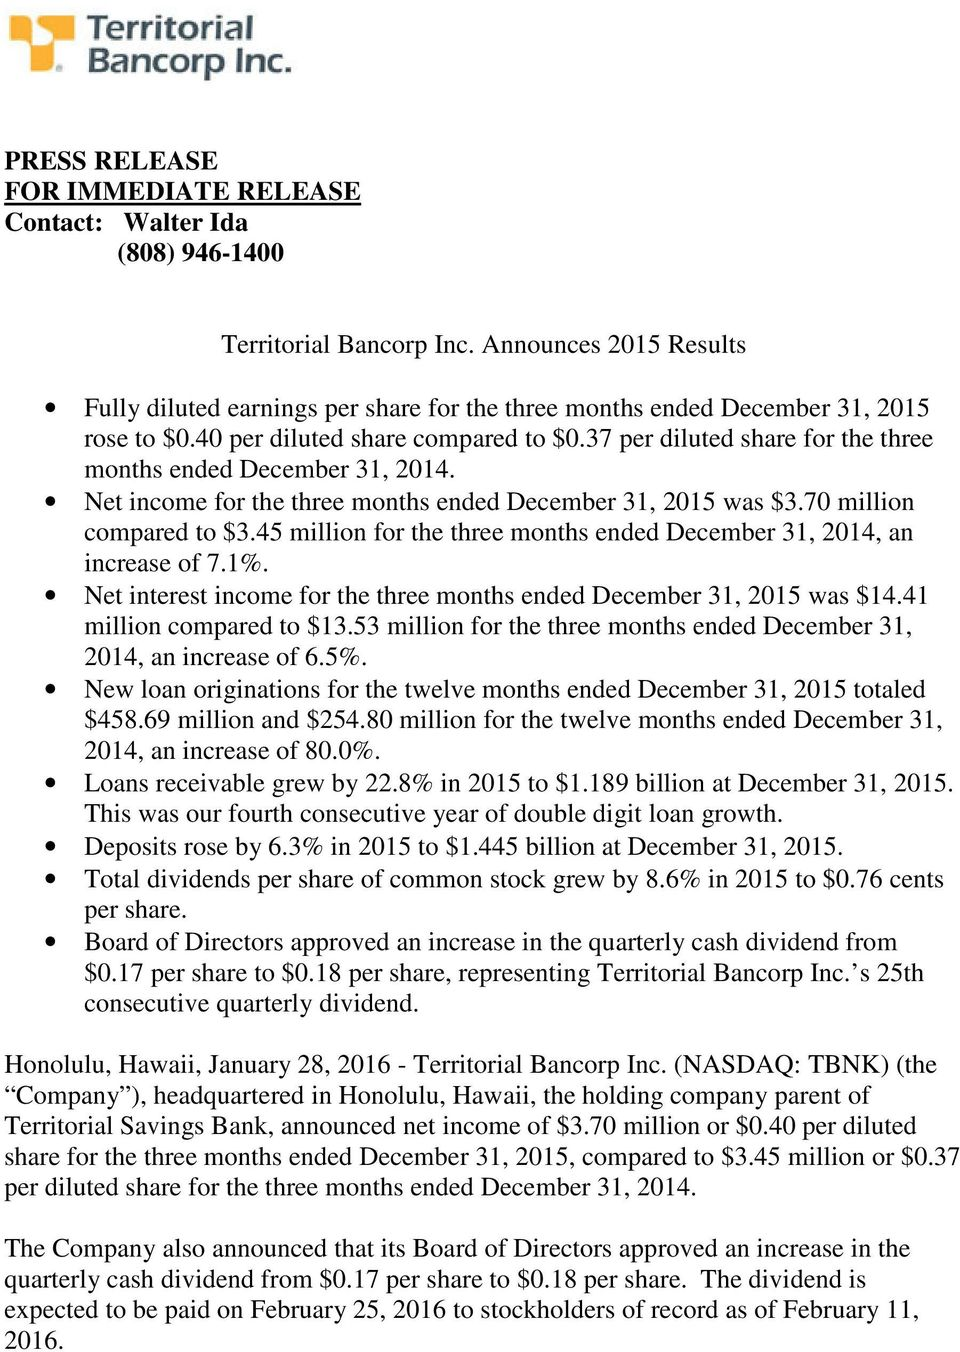 37 per diluted share for the three months ended December 31, 2014. Net income for the three months ended December 31, 2015 was $3.70 million compared to $3.